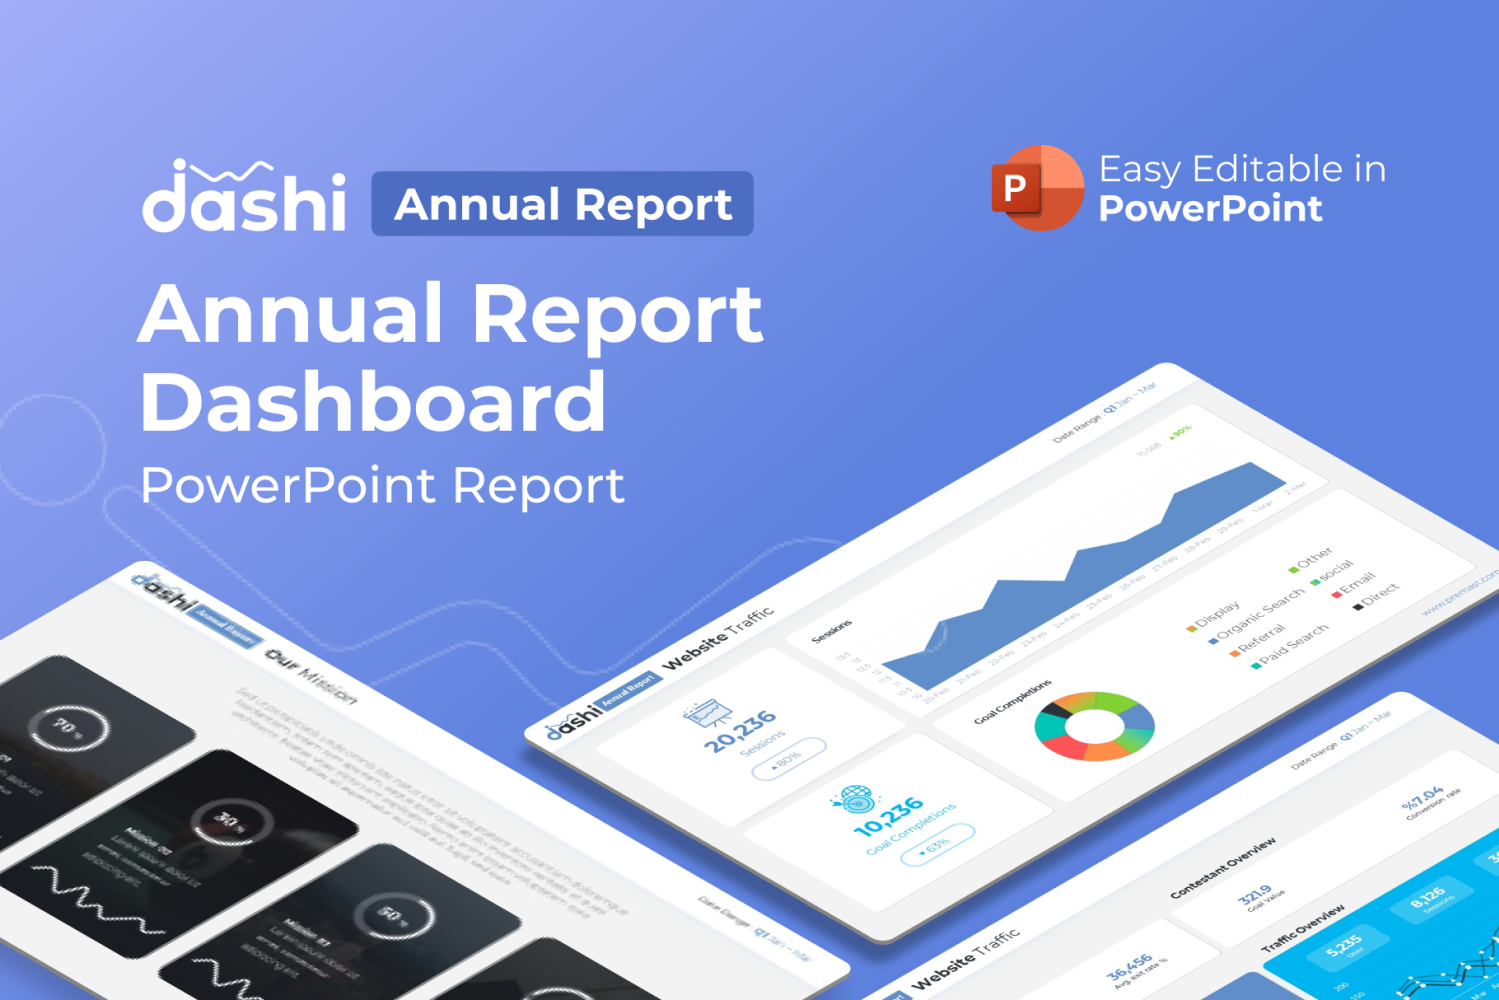 Dashi Annual Report Presentation PPT PowerPoint Template